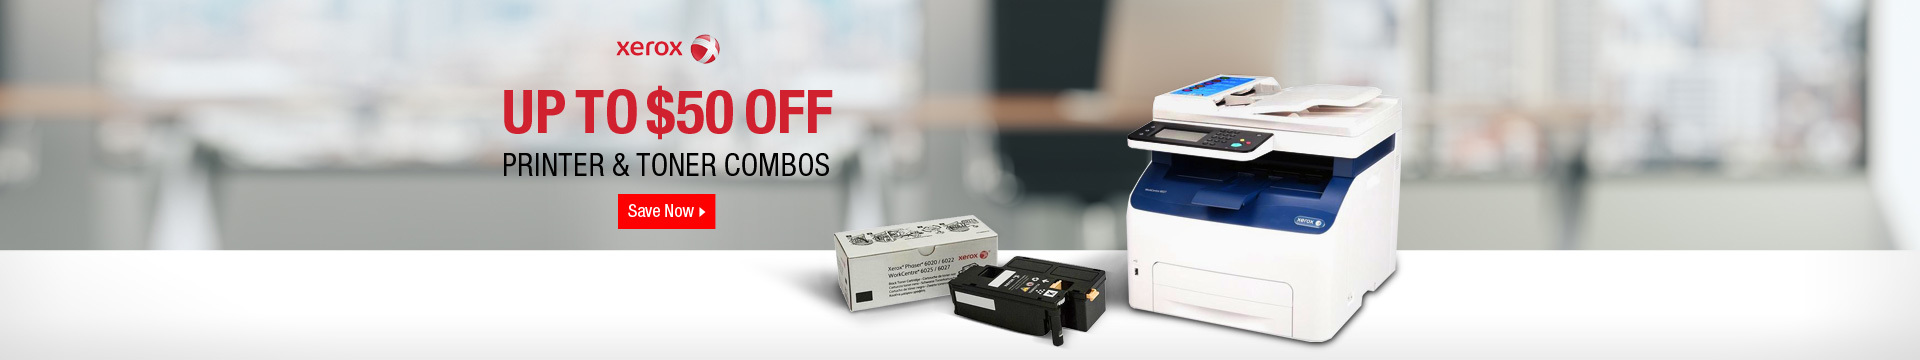 Up to $50 off Printer & Toner Combos